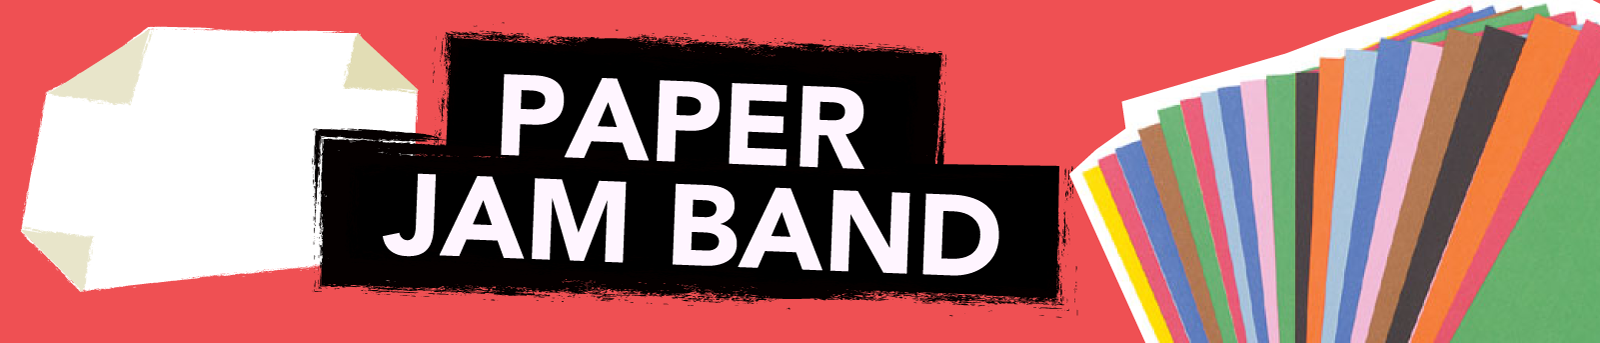 Paper Jam Band